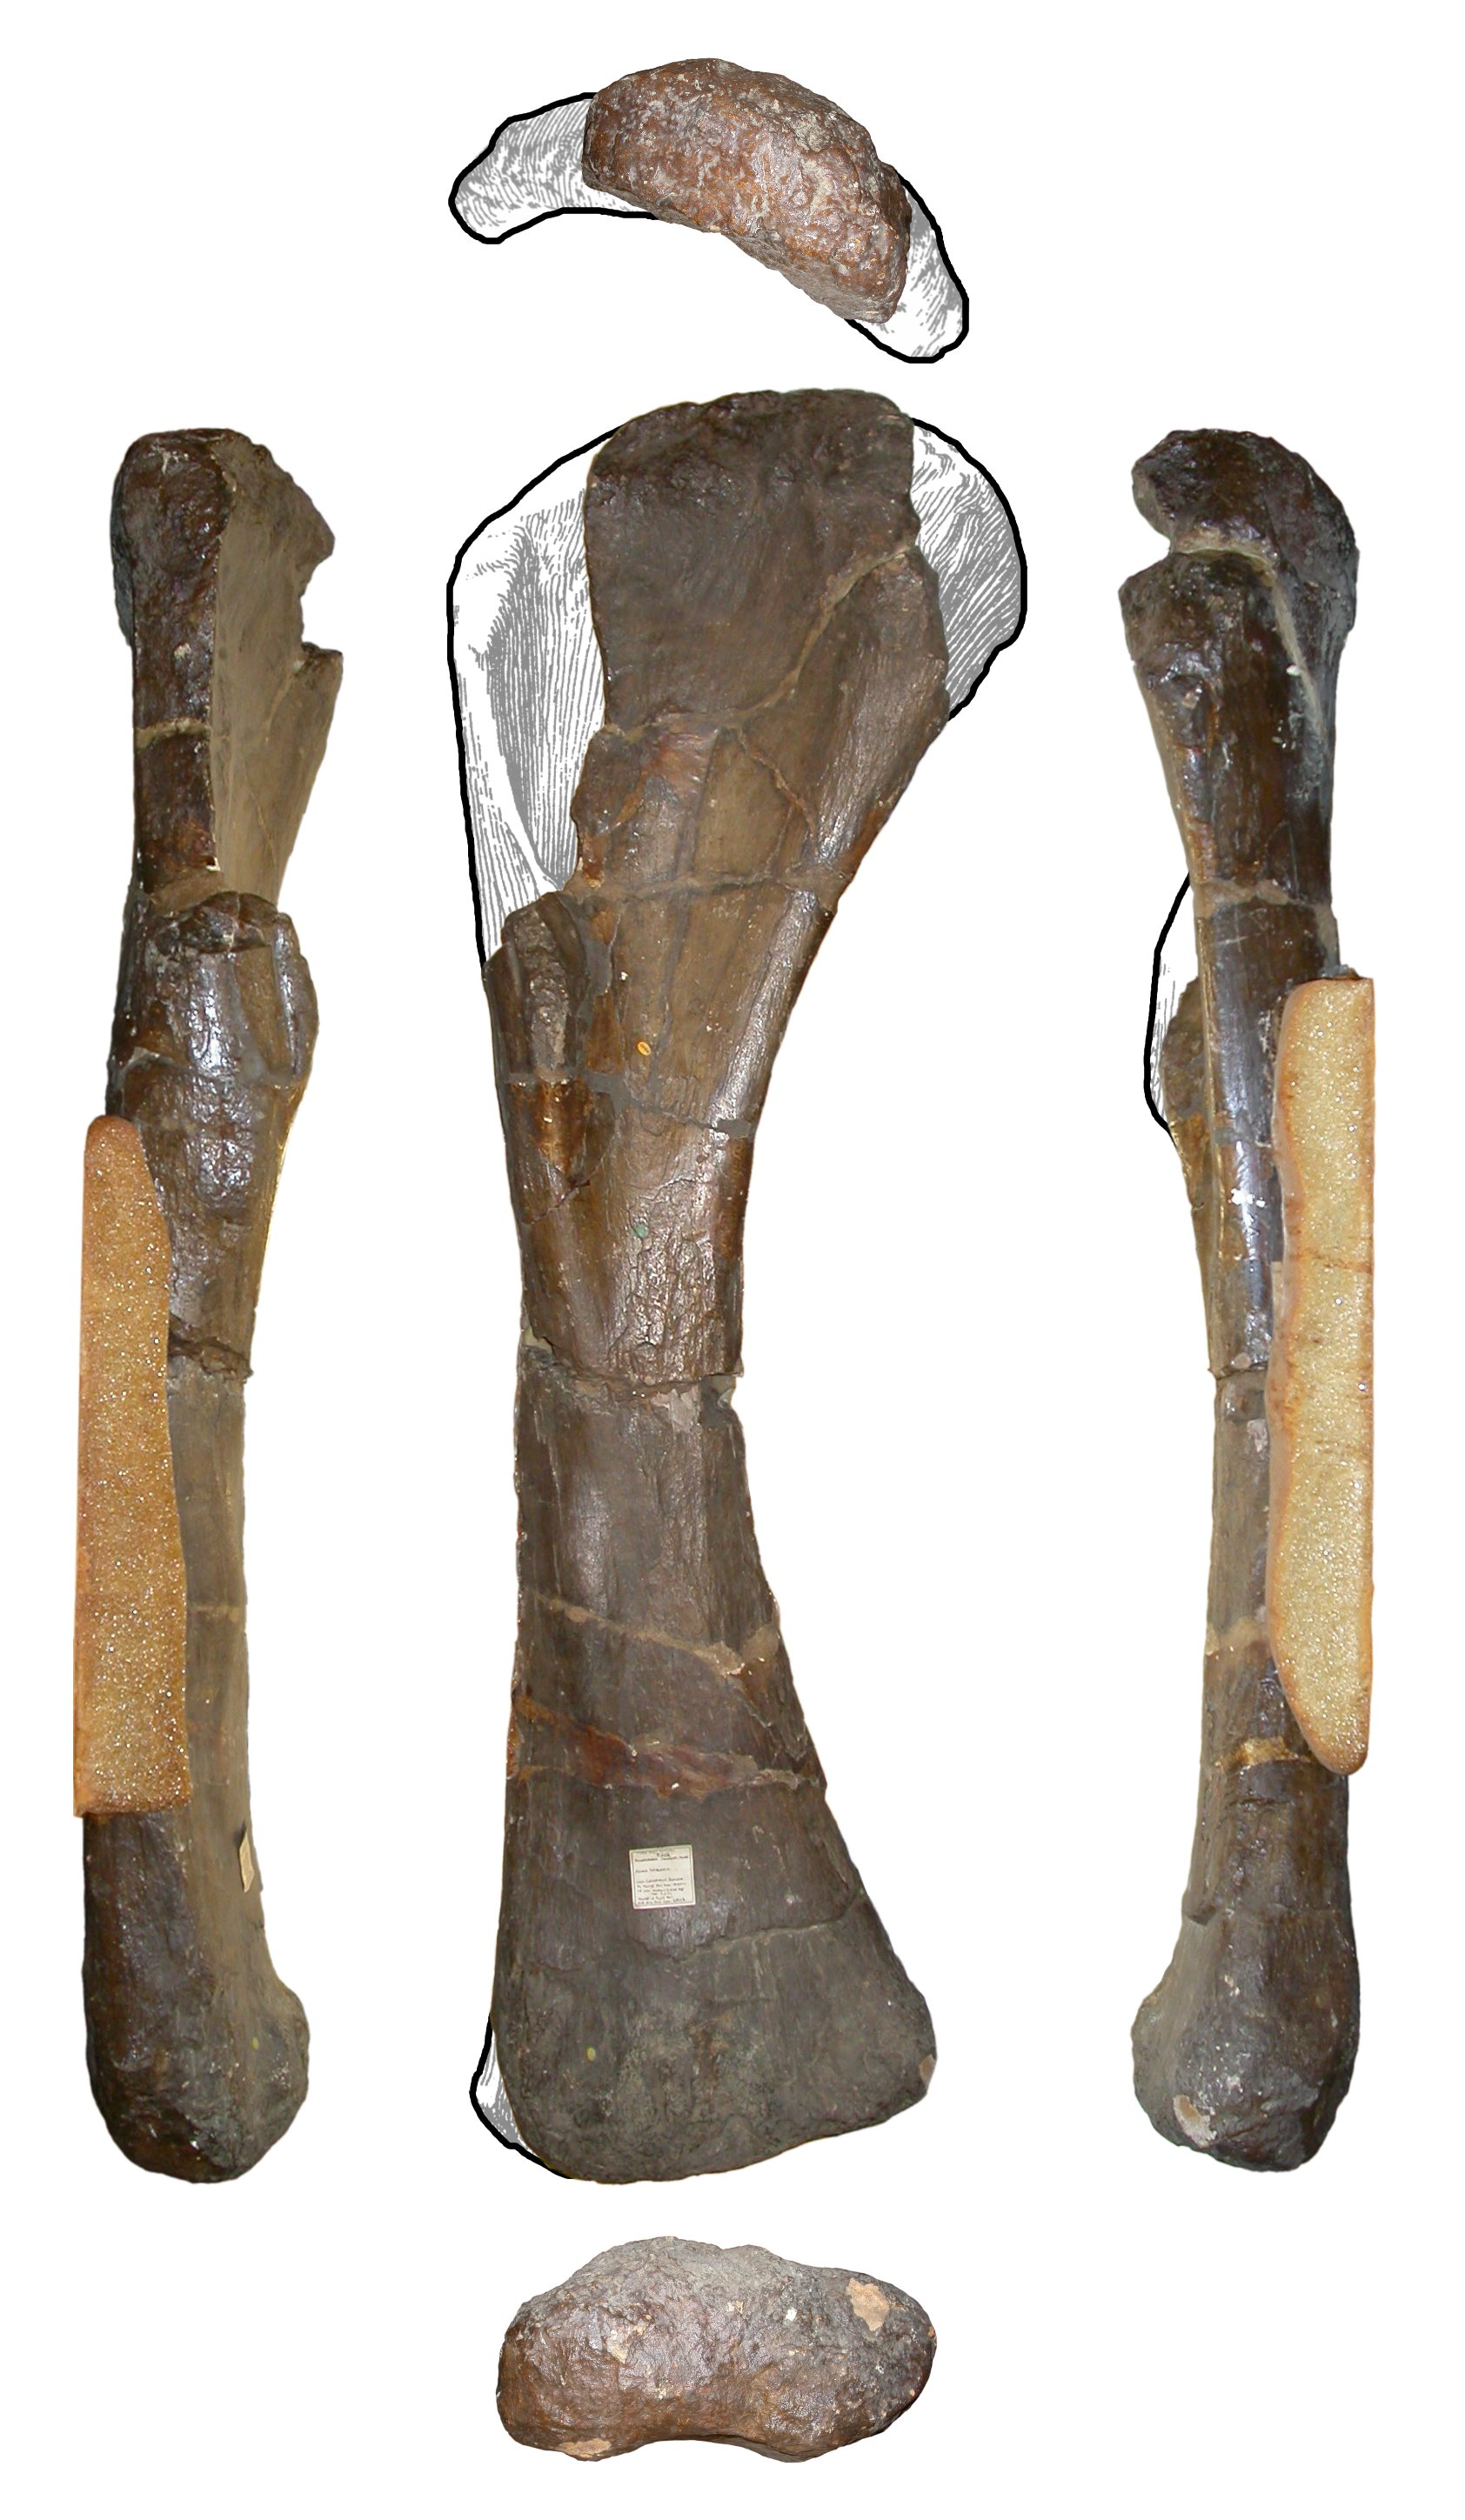 Right humerus of Pelorosaurus conybeari holotype NHMUK 28626. Top row: distal view, anterior to bottom. Middle row, left to right: lateral, anterior and medial views. Bottom row: distal, anterior to top. Missed parts reconstructed from the humerus of Giraffatitan brancai (Janensch 1961: Beilage A)